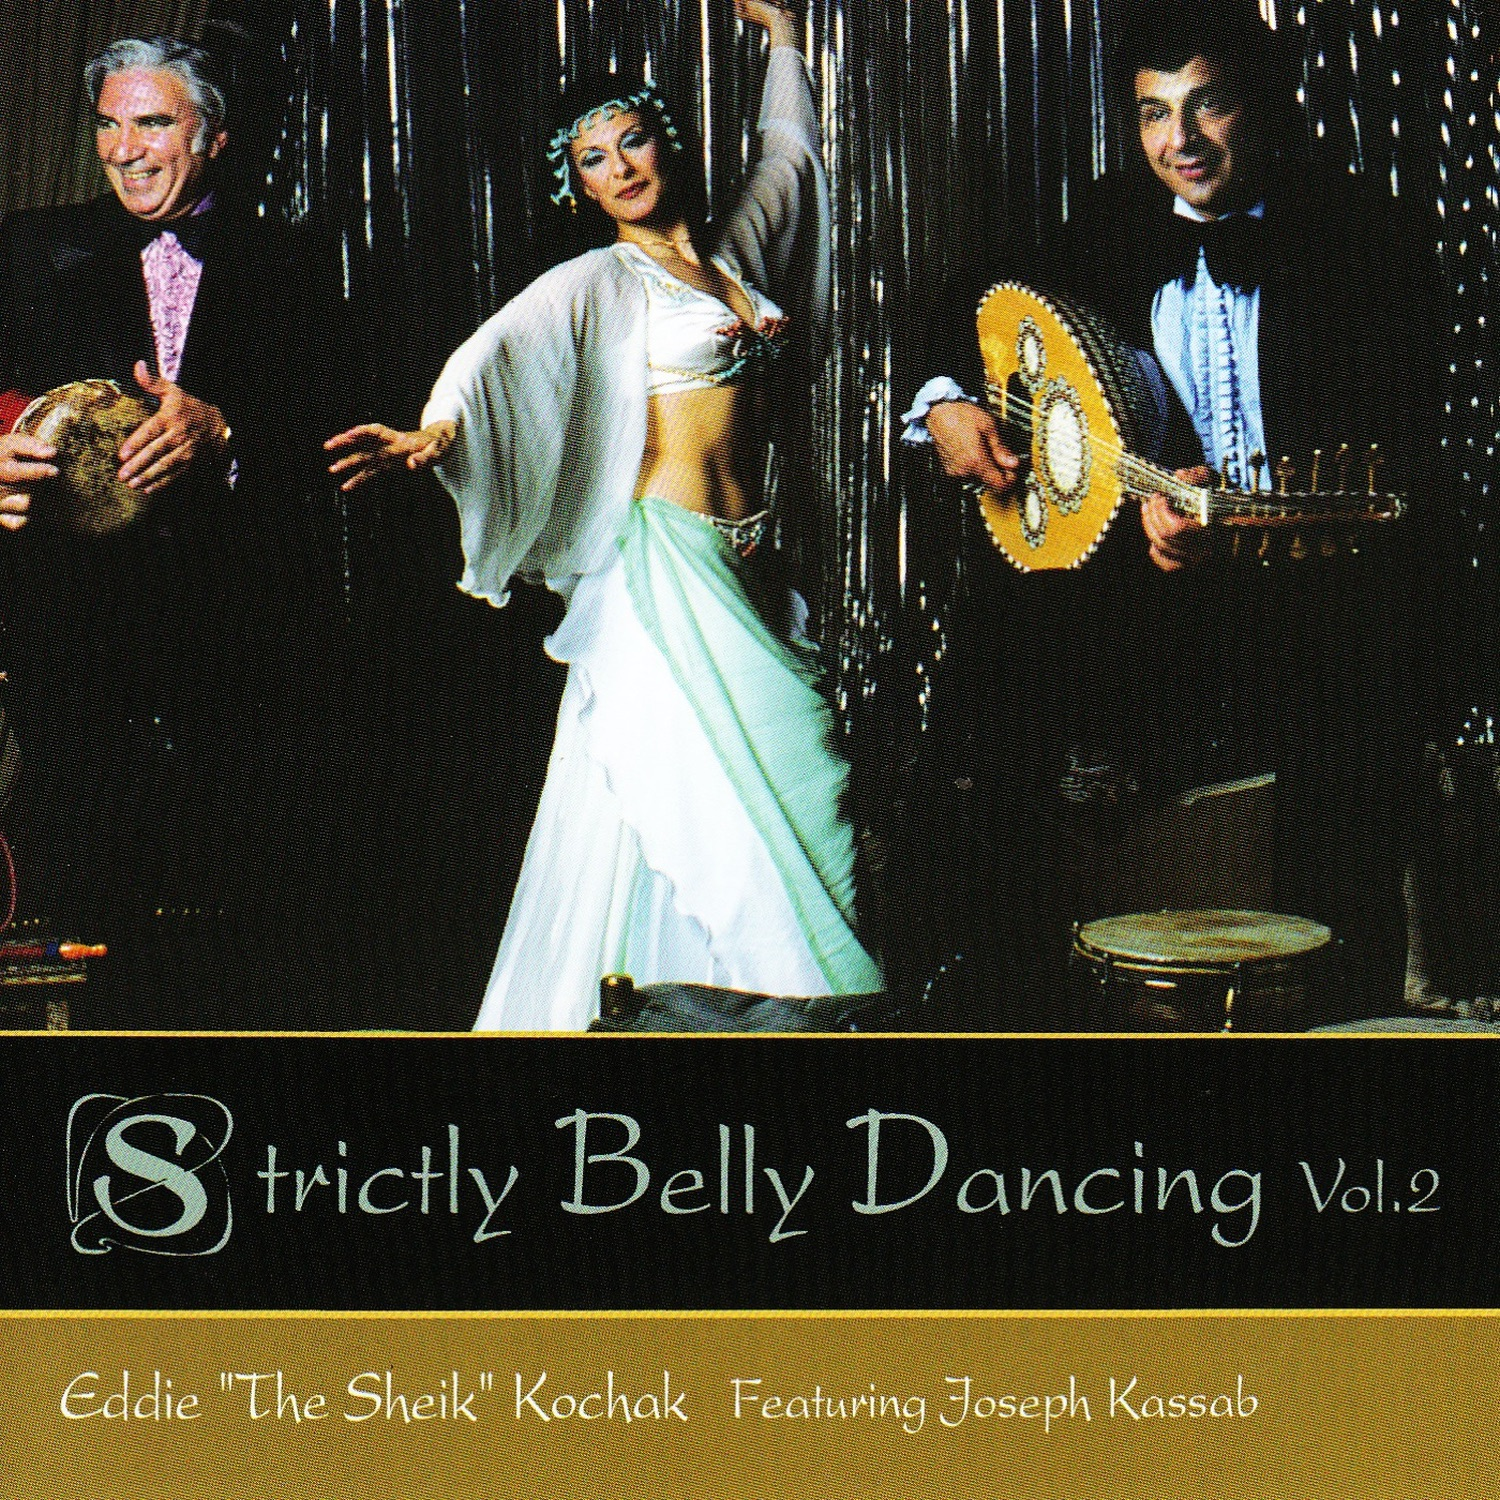 Strictly Belly Dancing Volume 2